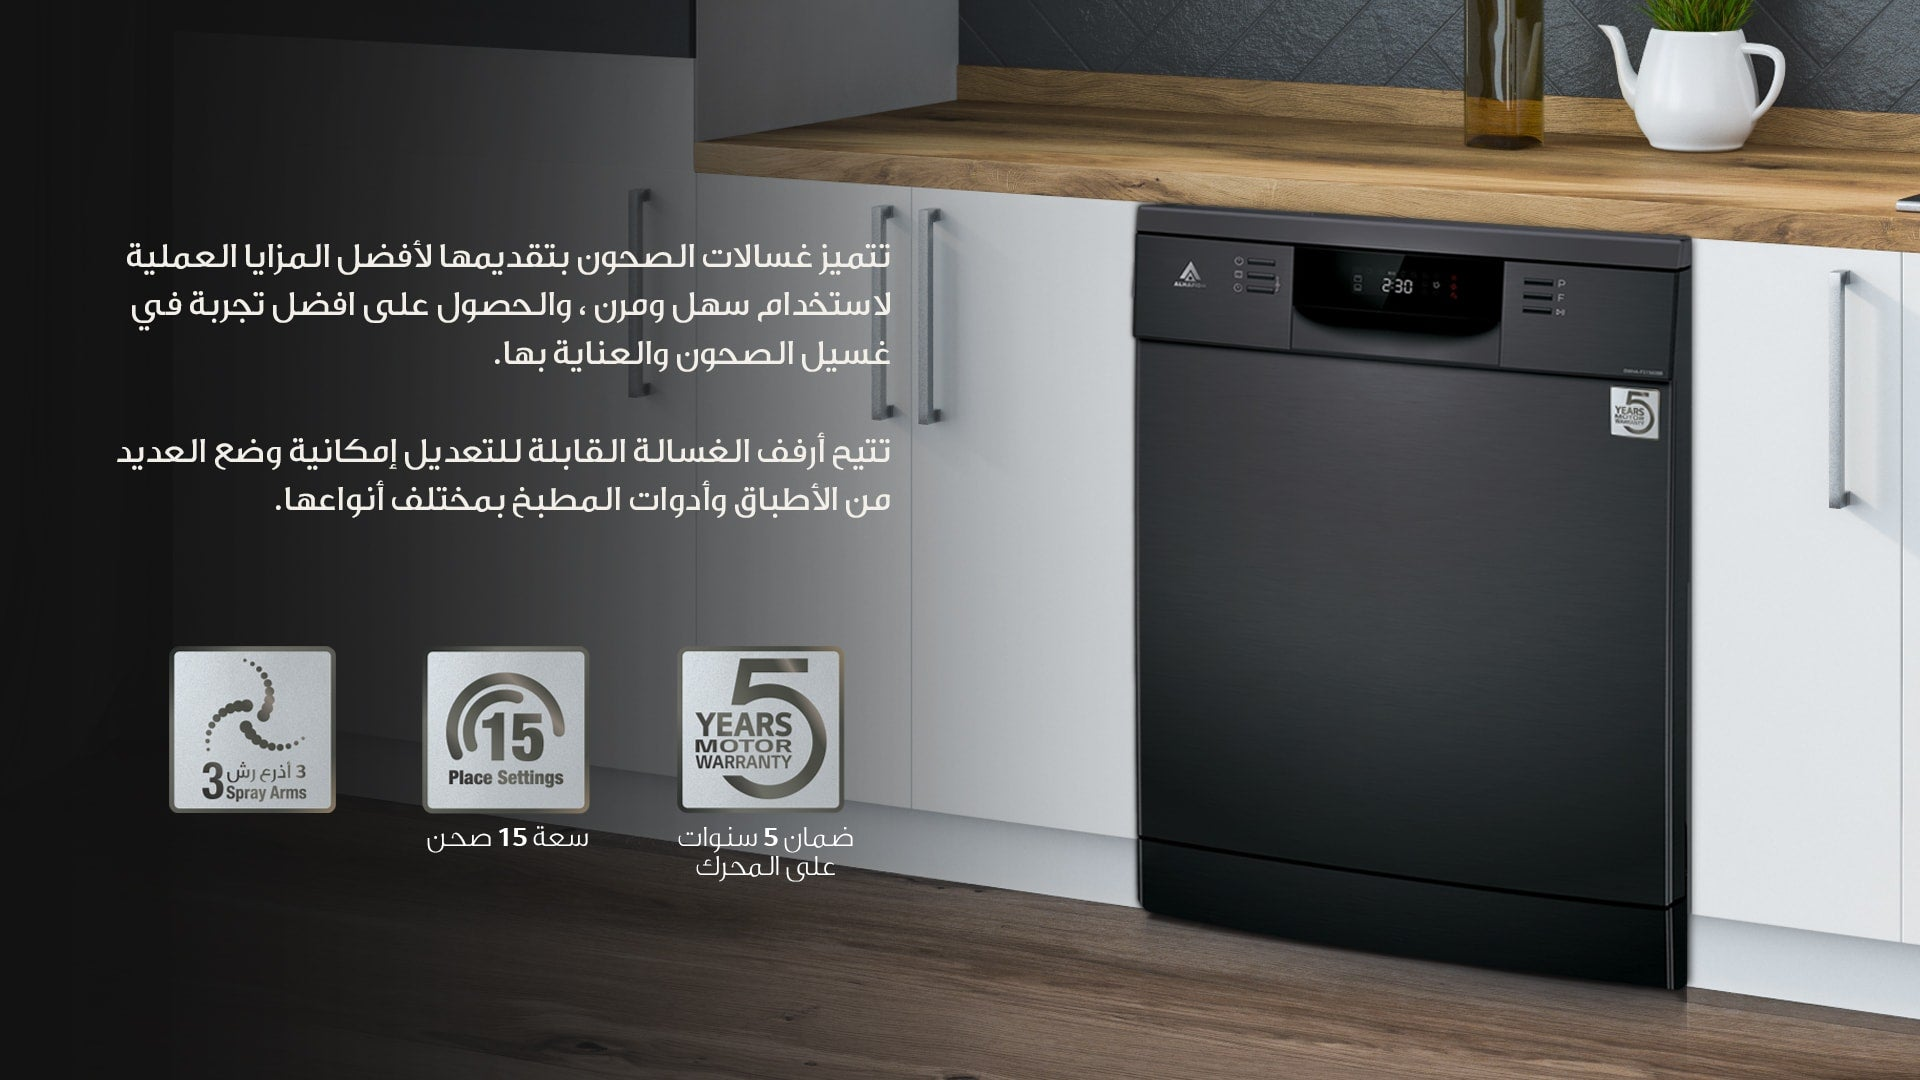 Alhafidh Dishwasher DWHA-FS1560BB Product Description